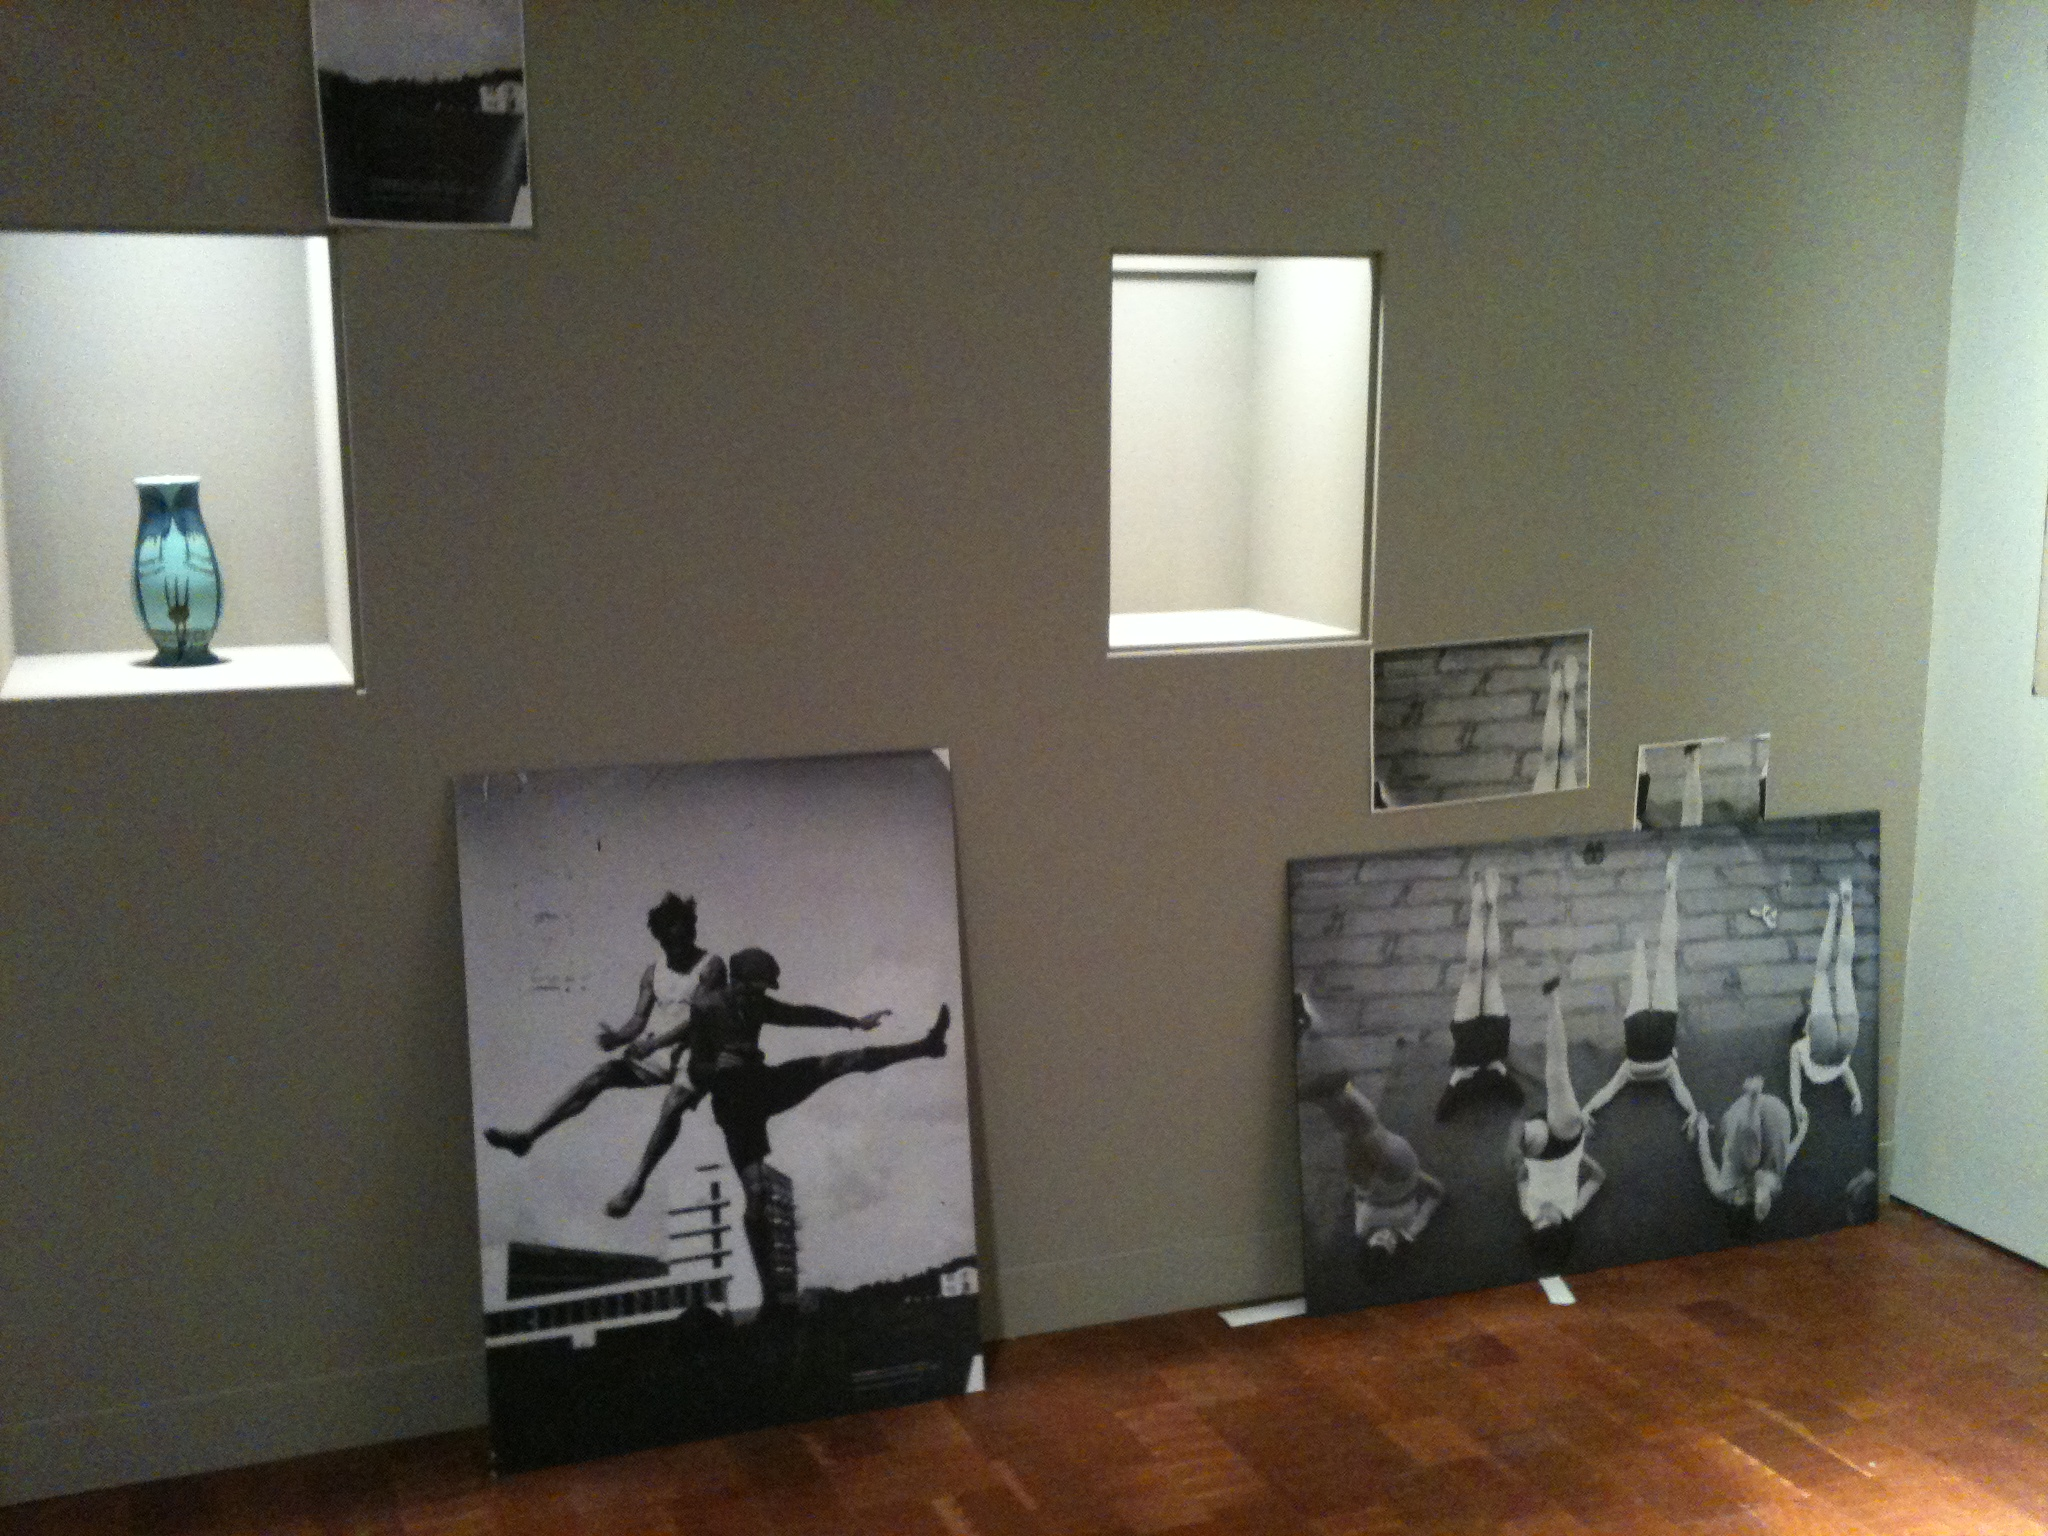 During installation photo. Two photo reproductions used as supportive materials are leaned against the wall. With two framed artworks and an additional vase, the entire wall will make a composition. Photo by the author.